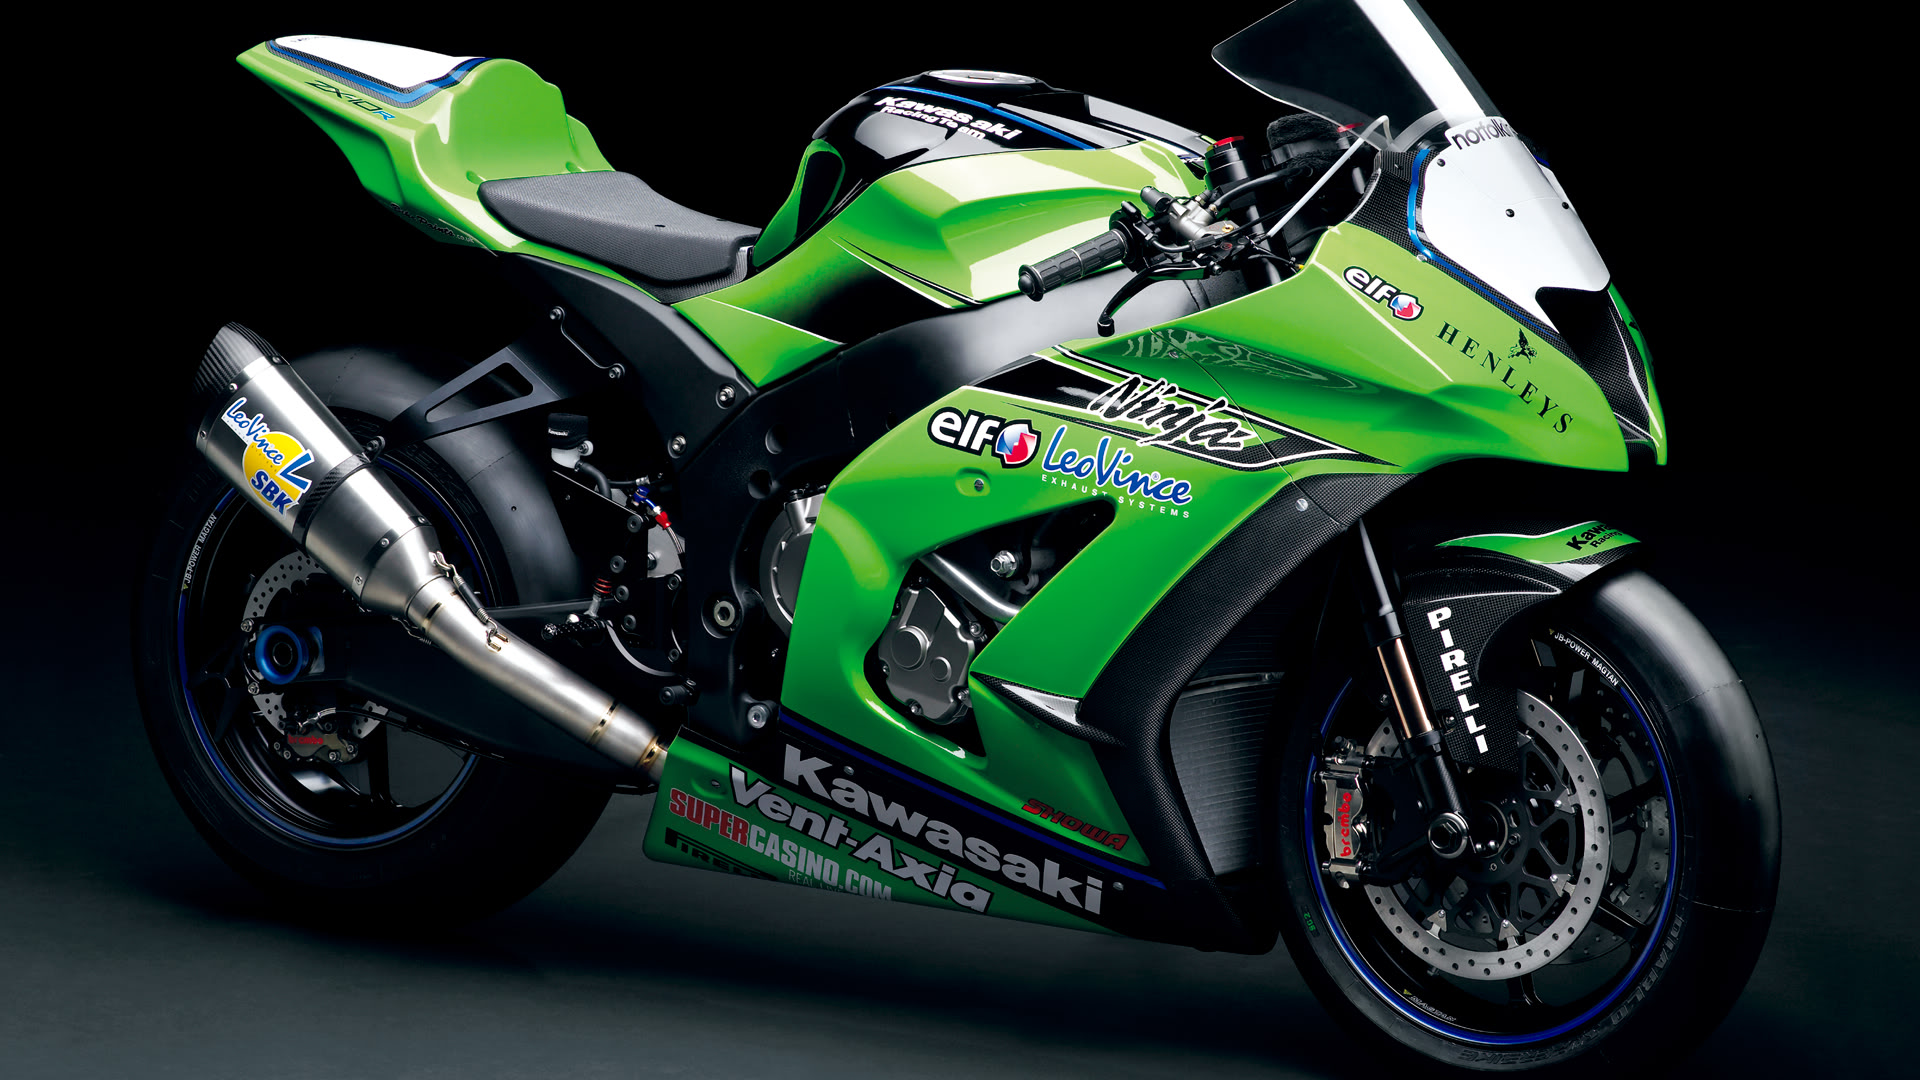 Zx10r Wallpapers, Photos And Desktop Backgrounds Up To 8K